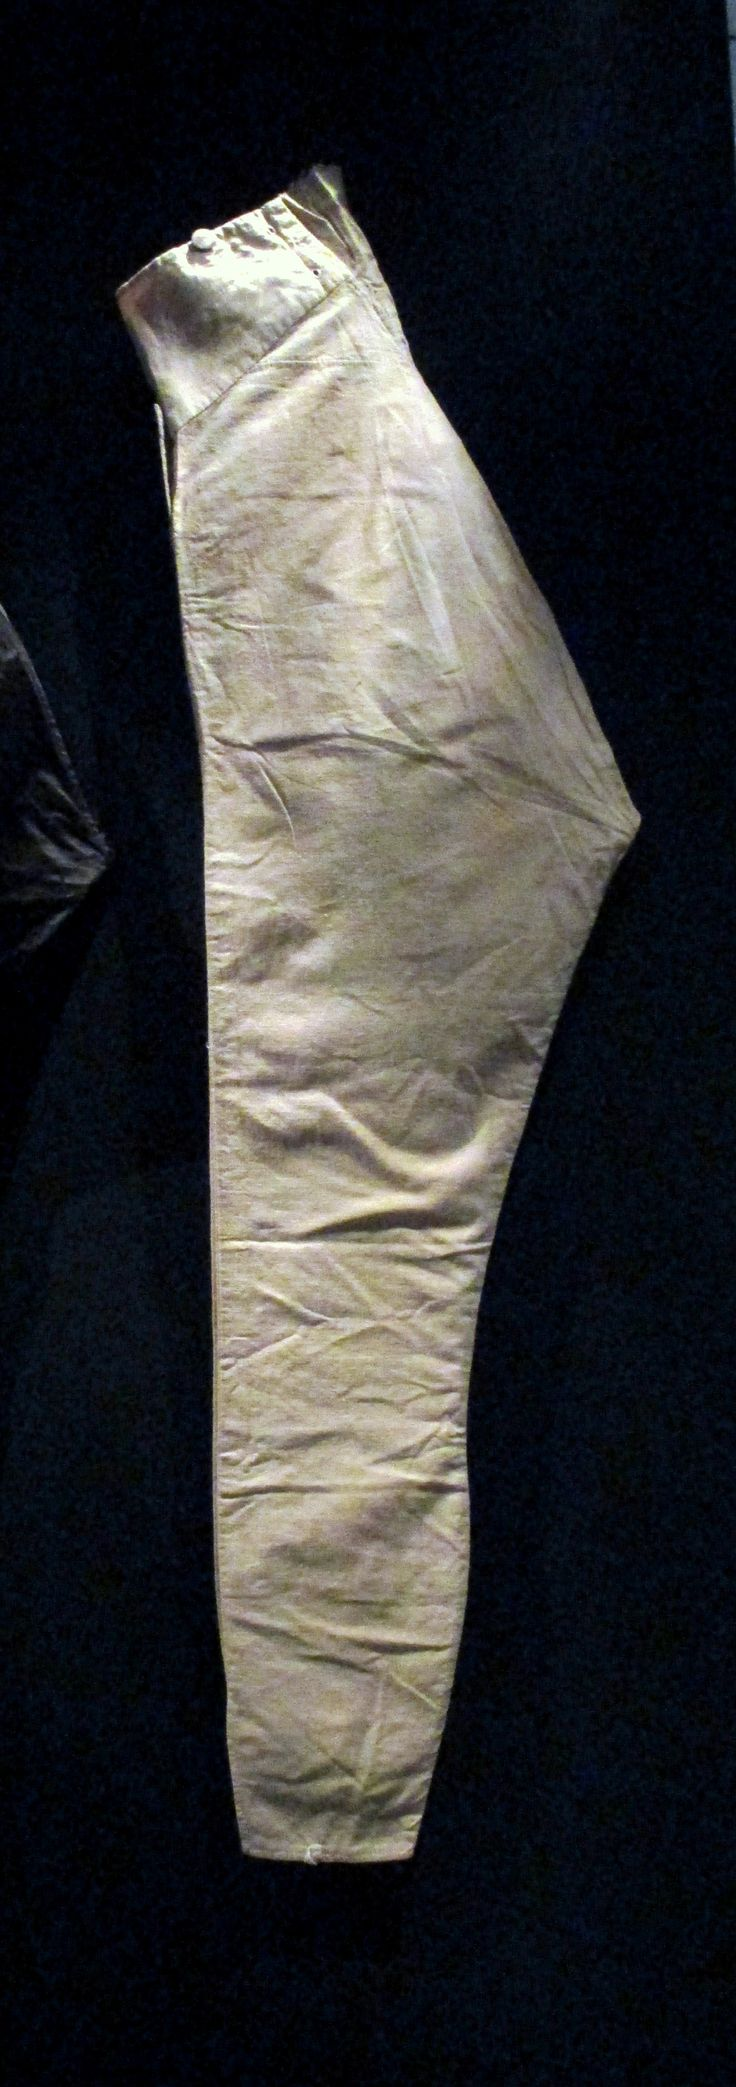 "1800-1810 Scottish Pantaloons at the Royal Ontario Museum, Toronto - From the curators' comments: ""Influenced by Neoclassical taste, pantaloons relied upon the art of a tailor for an impeccable cut that traced and enhanced the 'natural' shape of the leg. They were so tight, ankle slits were required in order to be able to get them on. A high waist emphasized the long, slender physique."""